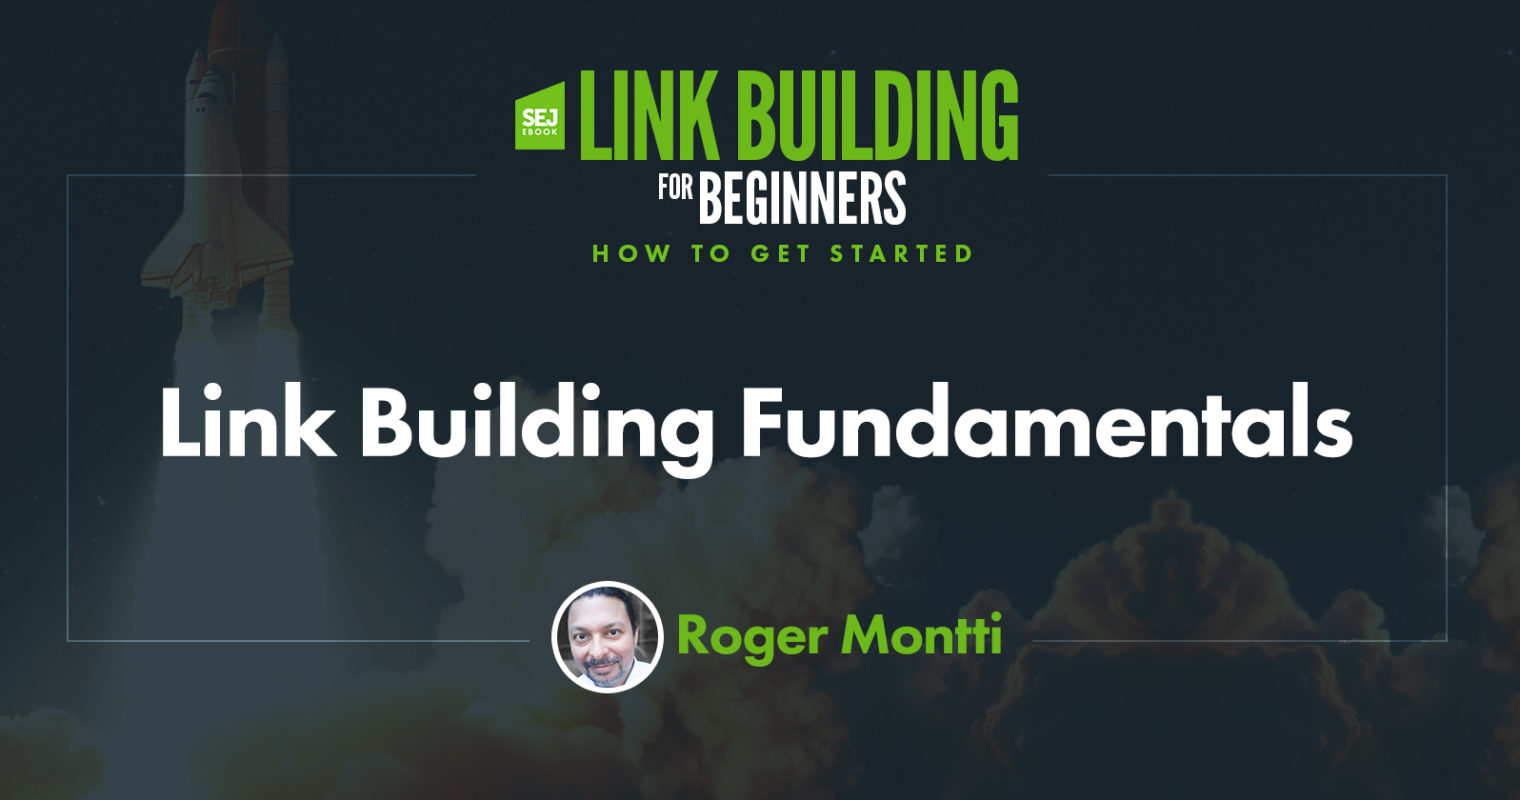 Link Building Fundamentals